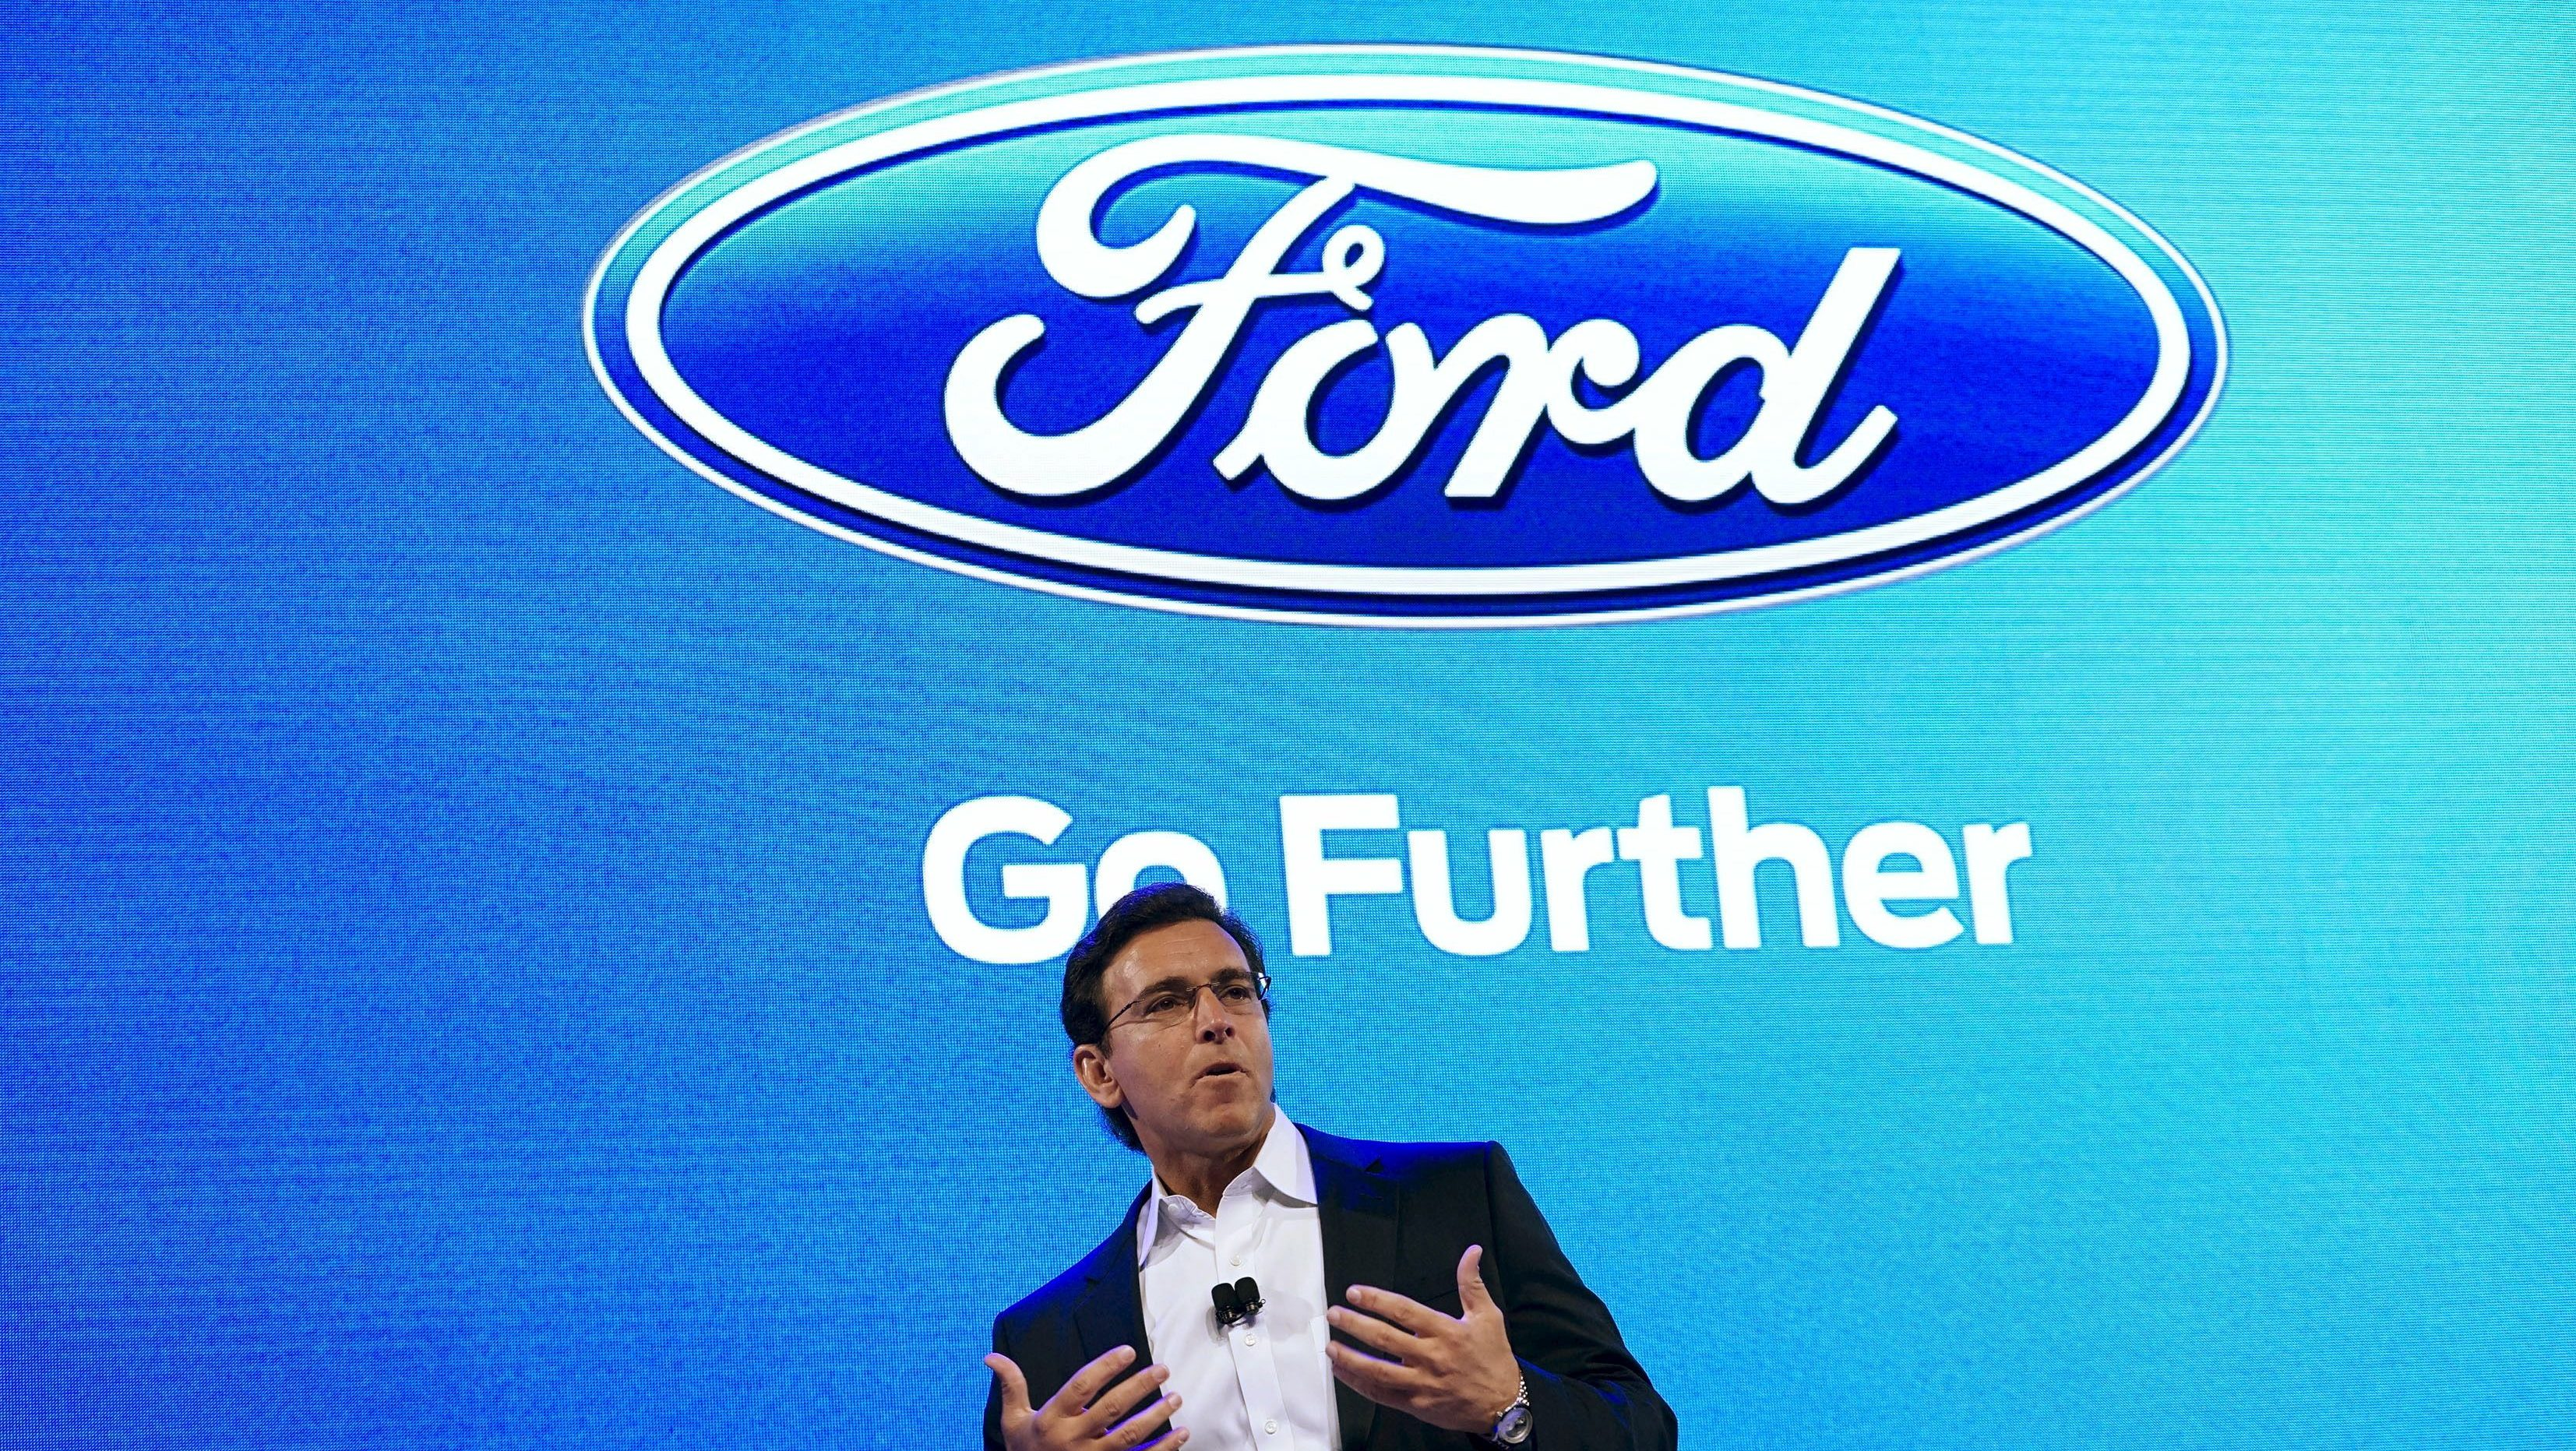 Ford Motor Co CEO Mark Fields speaks at the Ford press conference at the Consumer Electronics Show in Las Vegas, January 5, 2016. Ford said Tuesday it plans to triple to 30 the size of its fleet of self-driving test cars as part of an effort to accelerate autonomous vehicle development. REUTERS/Rick Wilking - GF10000283641